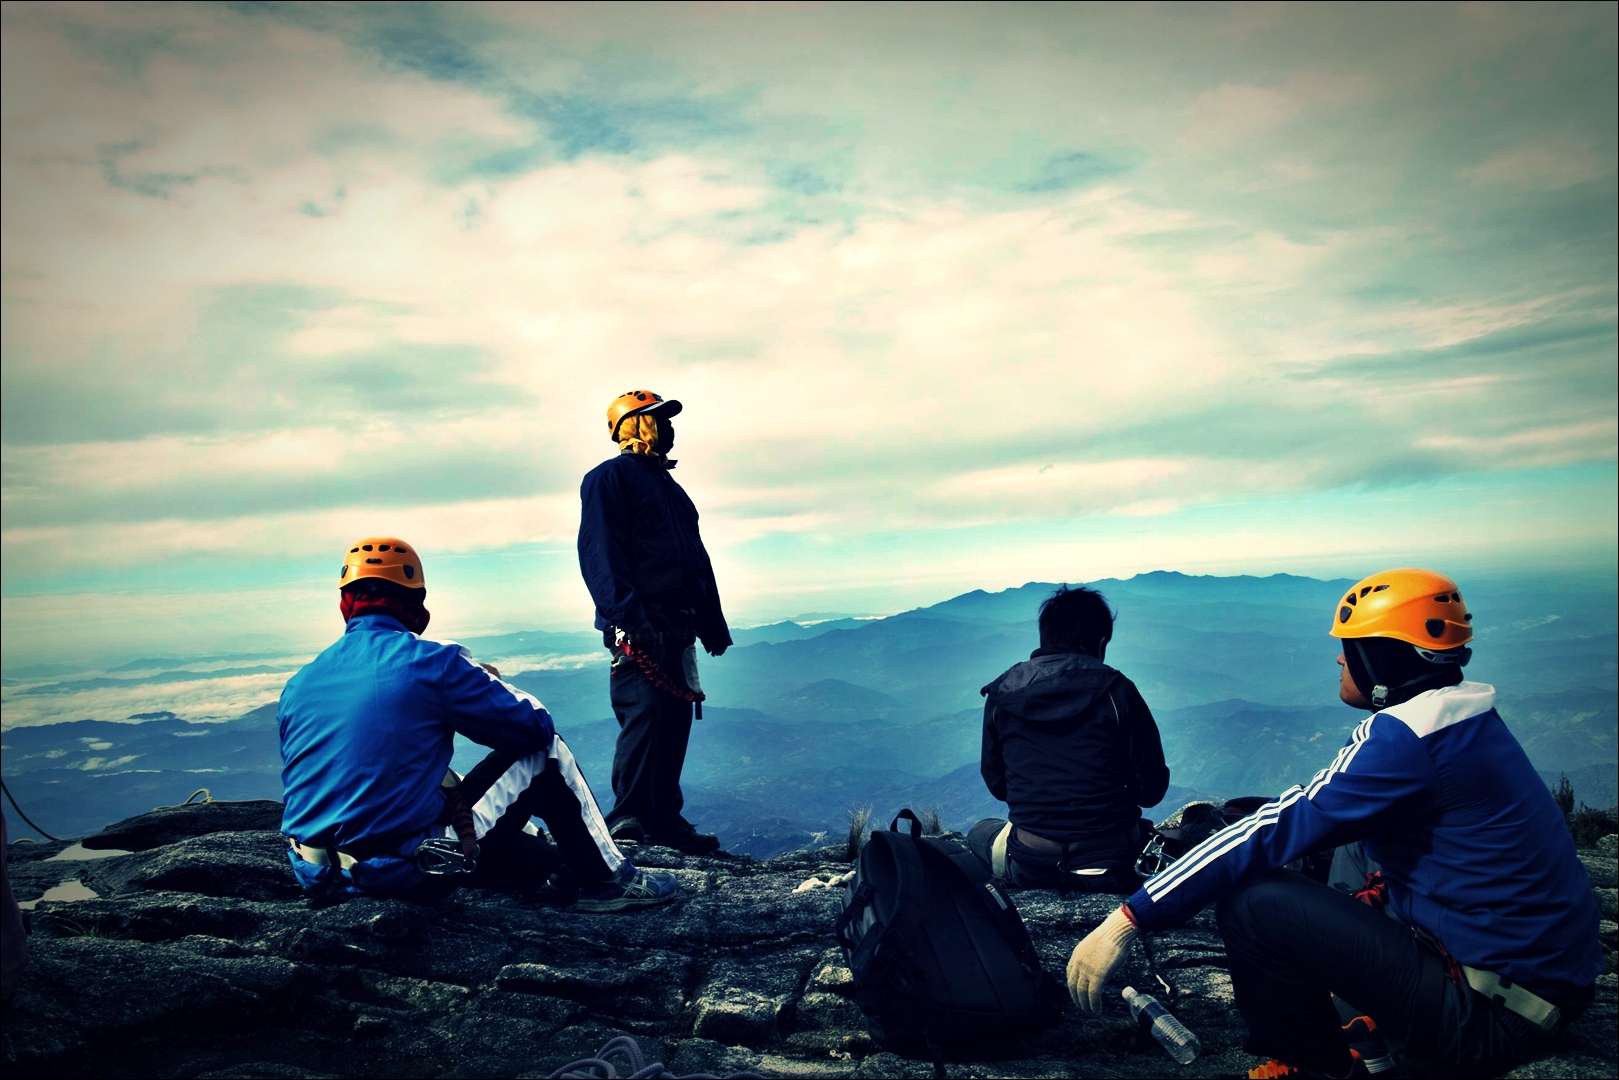 준비-'키나발루 산 비아 페라타.  The highst Via Ferrata Kinabalu mountain '